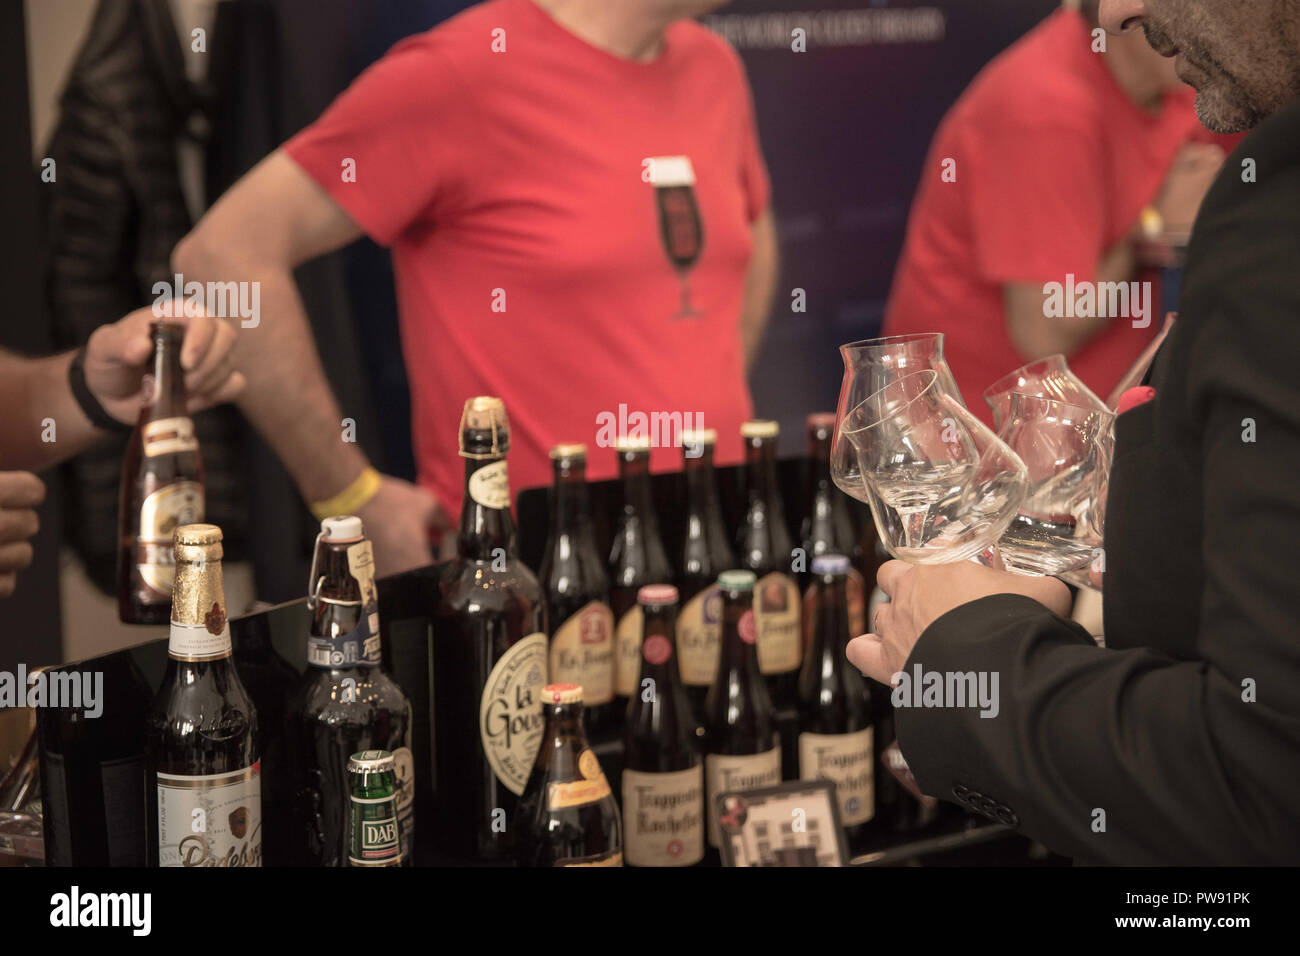 Athens, Greece. 13th Oct, 2018. A man seen holding empty glasses during the exhibition.The 5th Zythognosia Exhibition, people get a chance during the exhibition to taste multiple brews and premium beers from different brands and companies like Levante for Zante Lager, Asylum for Asylum saison, Mikonu for Mikonu Pale Ale, Deals for Fischer, Samichlaus and Cava di patsi for Flaros Session Ale in Zappeion Megaron in Athens. Credit: Nikolas Joao Kokovlis/SOPA Images/ZUMA Wire/Alamy Live News - Stock Image